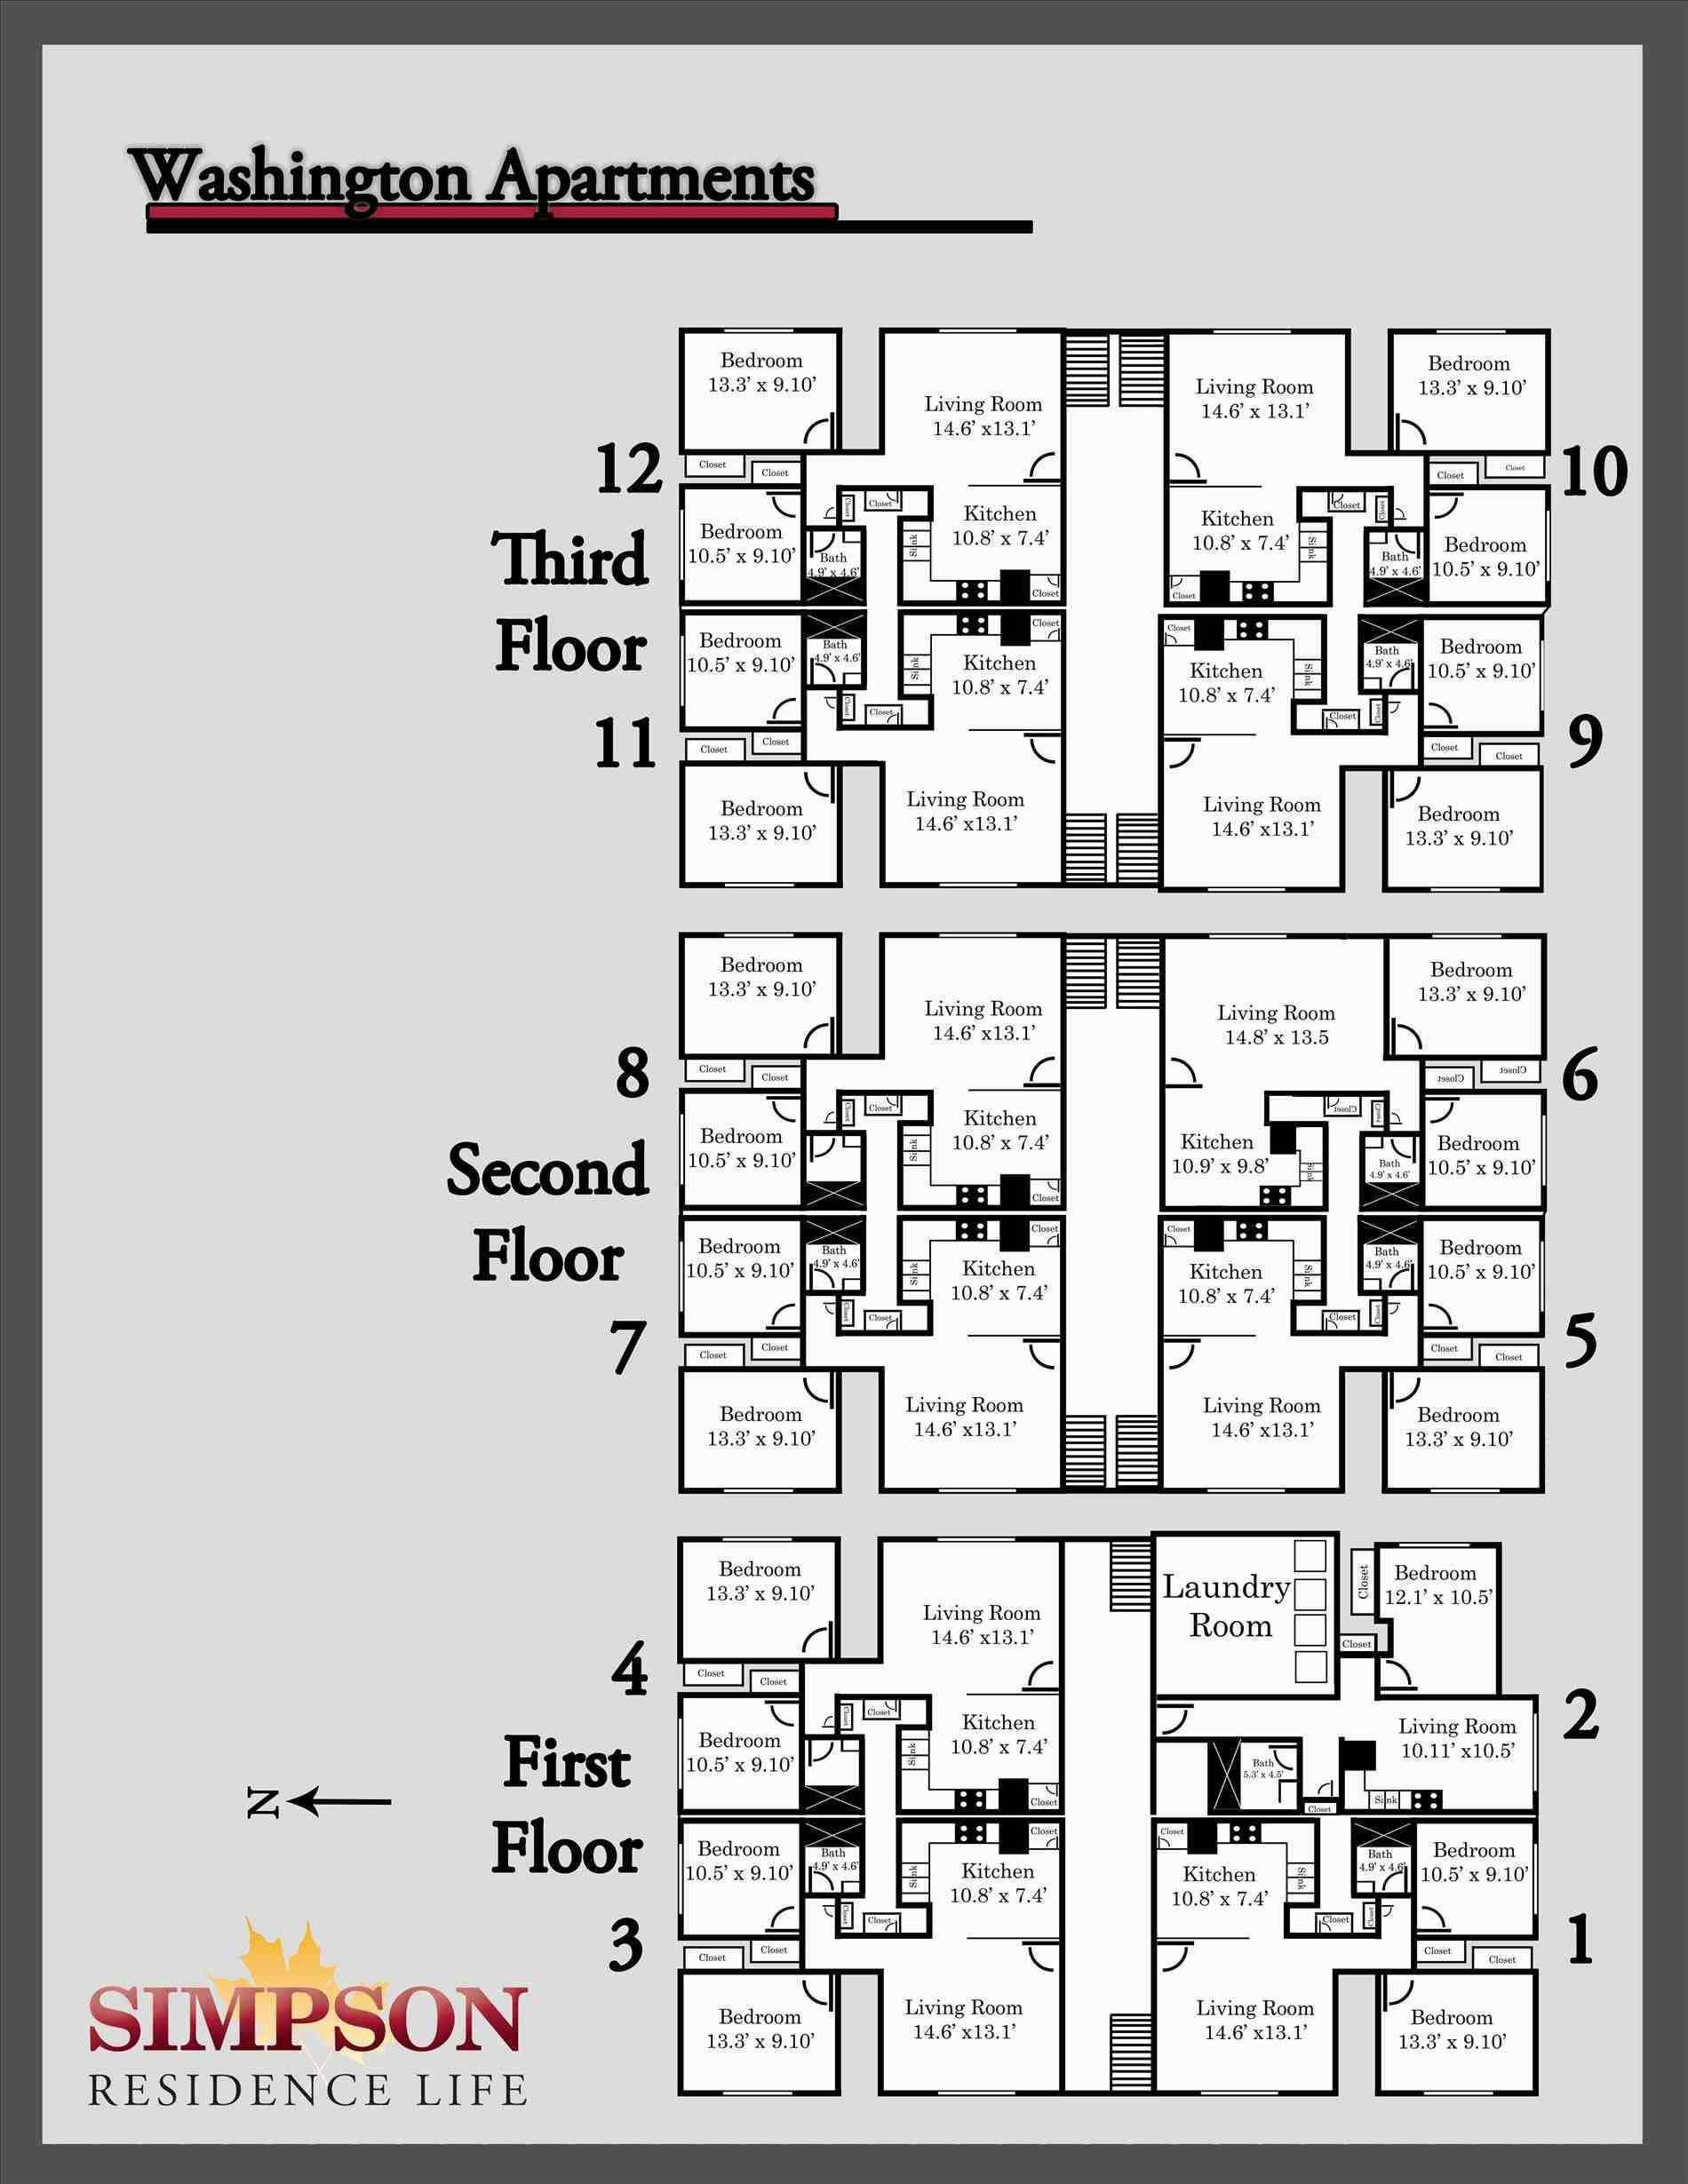 2 Bedroom Apartment Building Floor Plans Cool 10 2 Floor House Plans 3d On Architecture M Apartment Building Studio Apartment Floor Plans Floor Plan Design